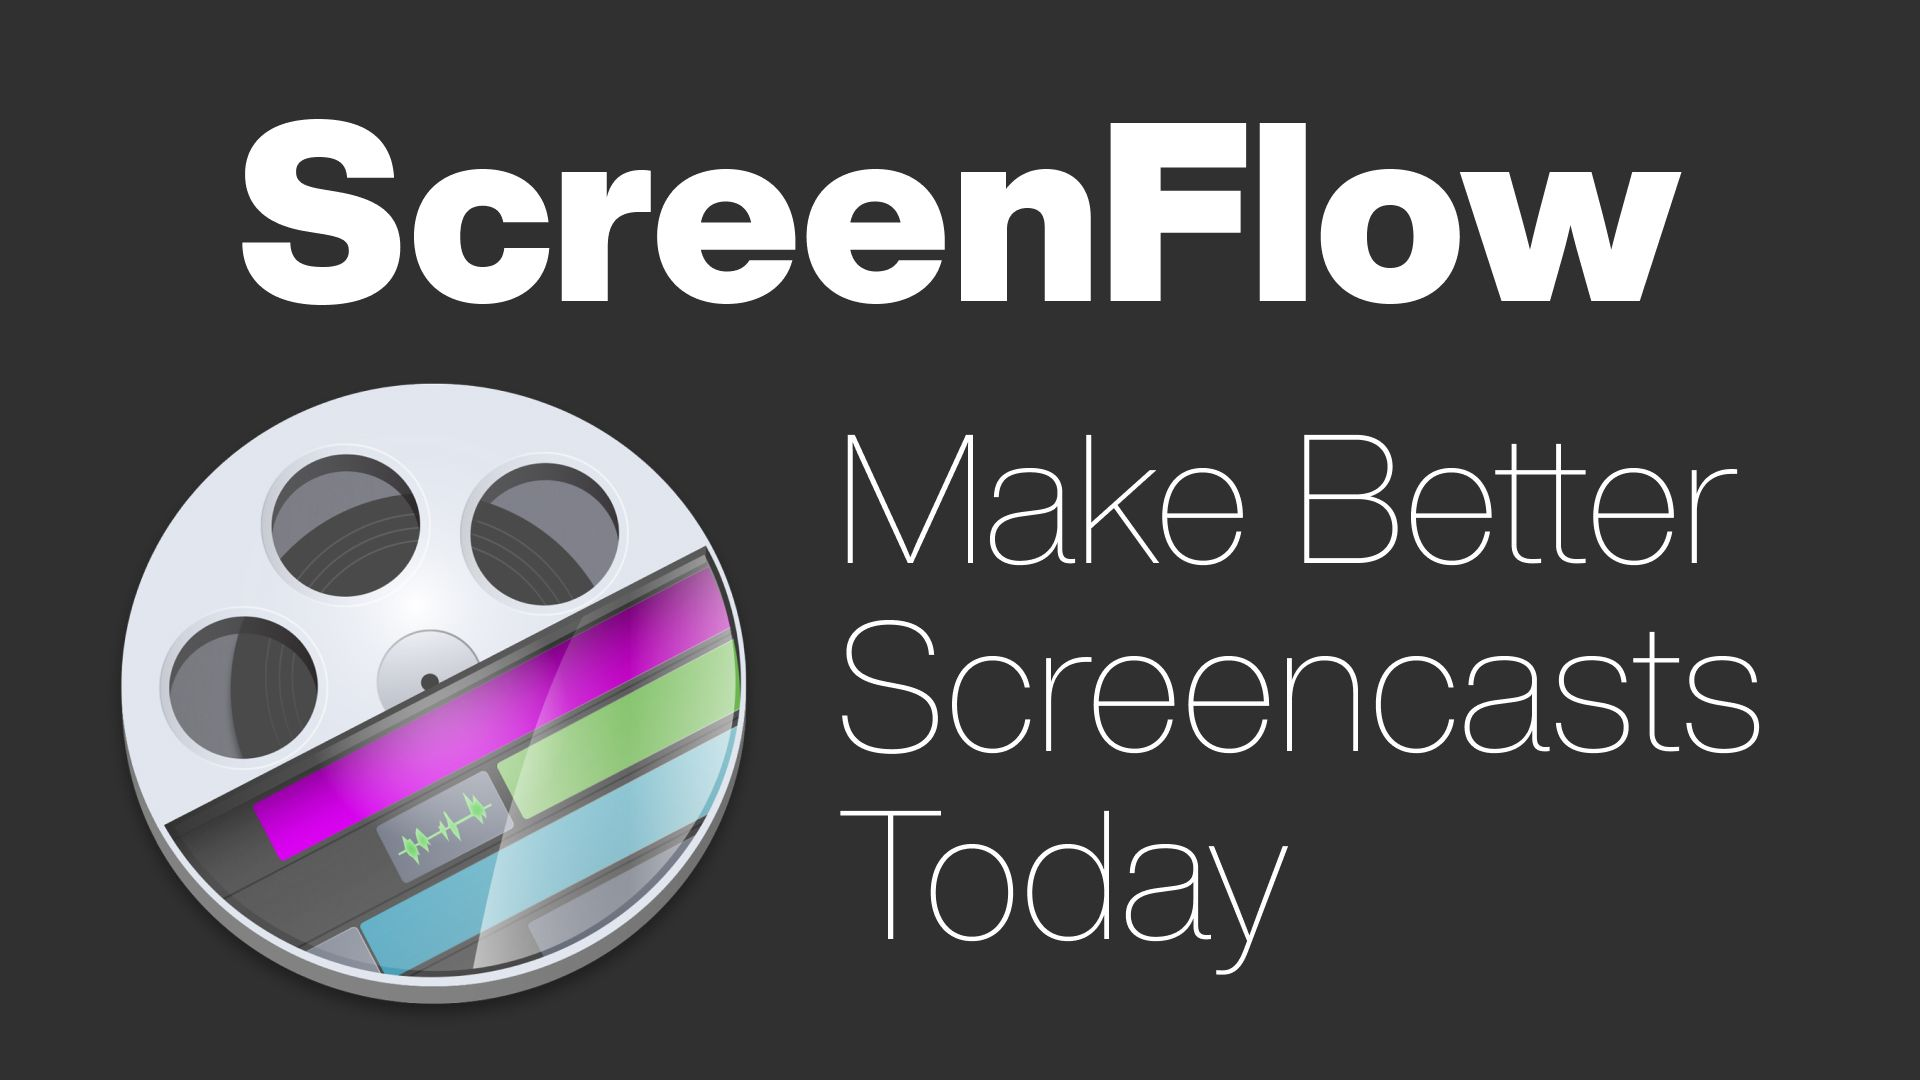 Use ScreenFlow Like a Pro with a Few Simple Tips